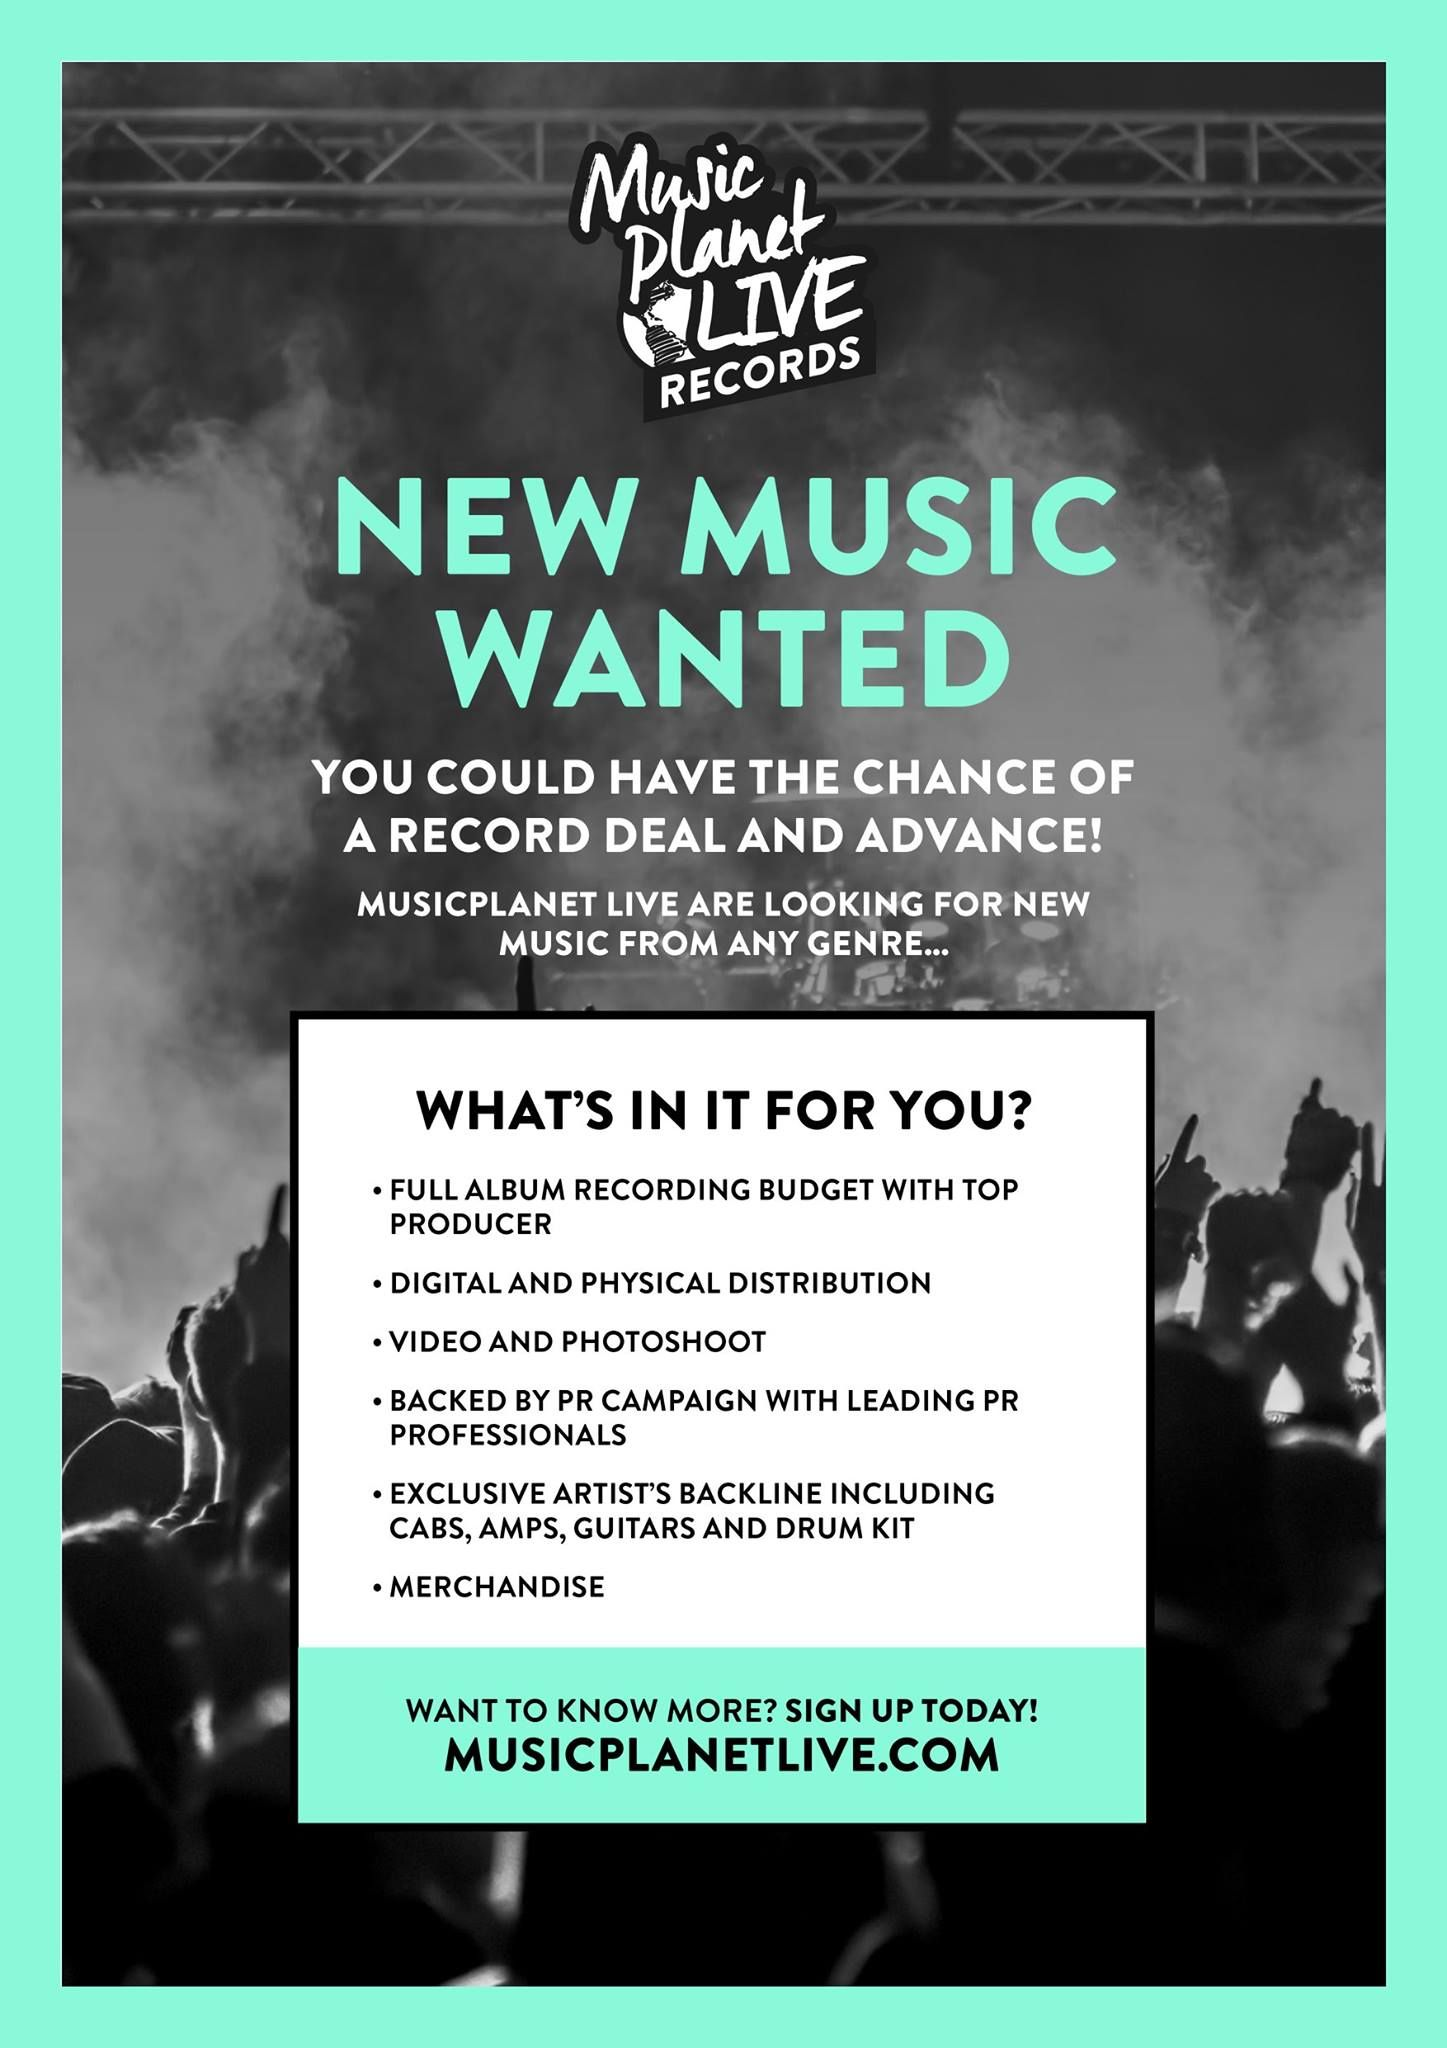 Poster Campaign For Music Planet Live Advertising New Social Media Hub And Promoting Record Label Competition Record Label Alternative Aesthetic Records